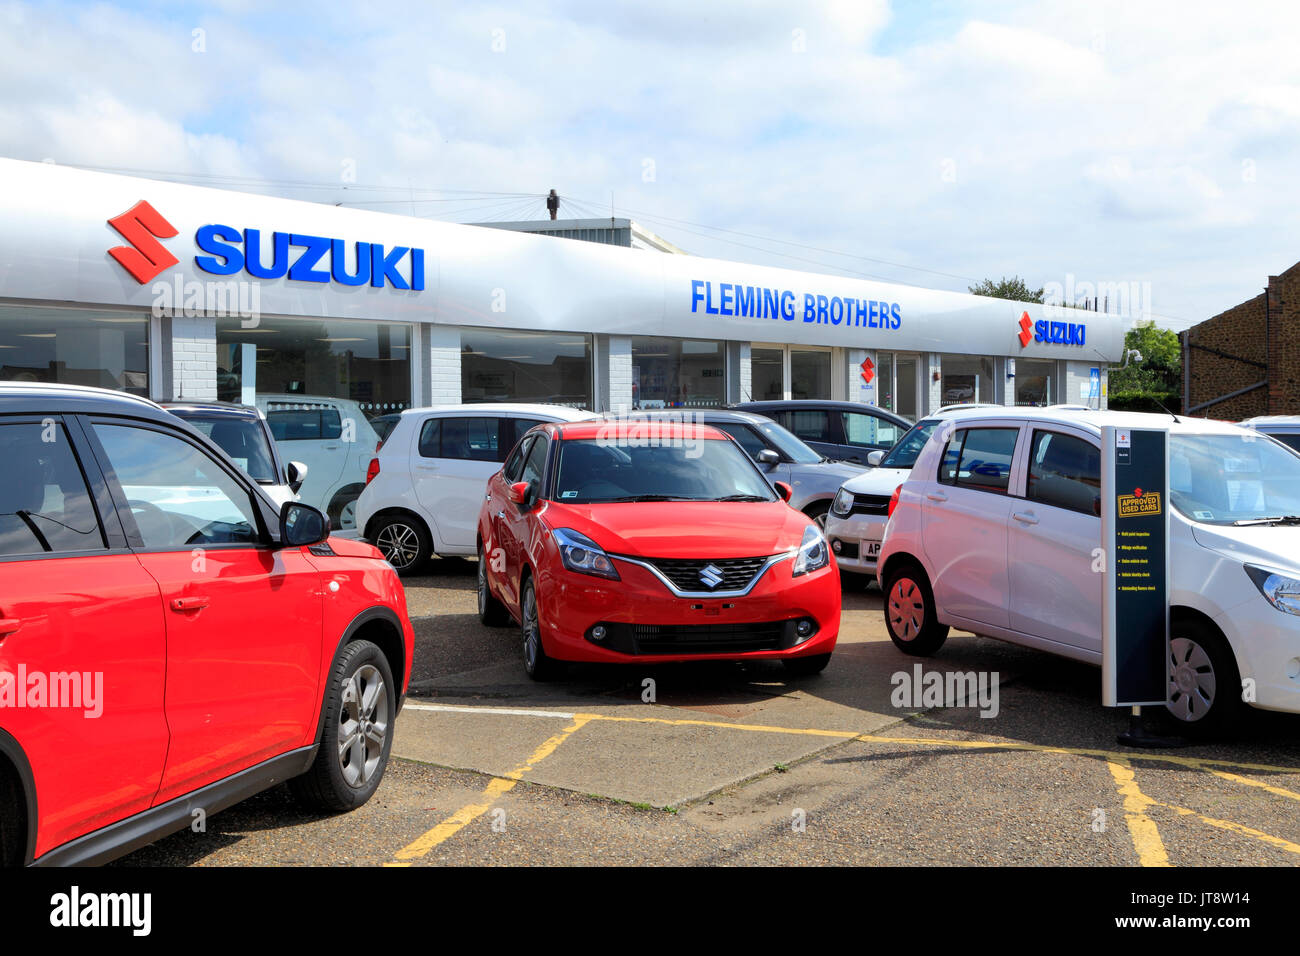 Suzuki car dealers, main dealership, dealer, dealerships, Fleming Brothers, showroom, showrooms, Hunstanton, Norfolk, England, UK, cars, vehicles - Stock Image